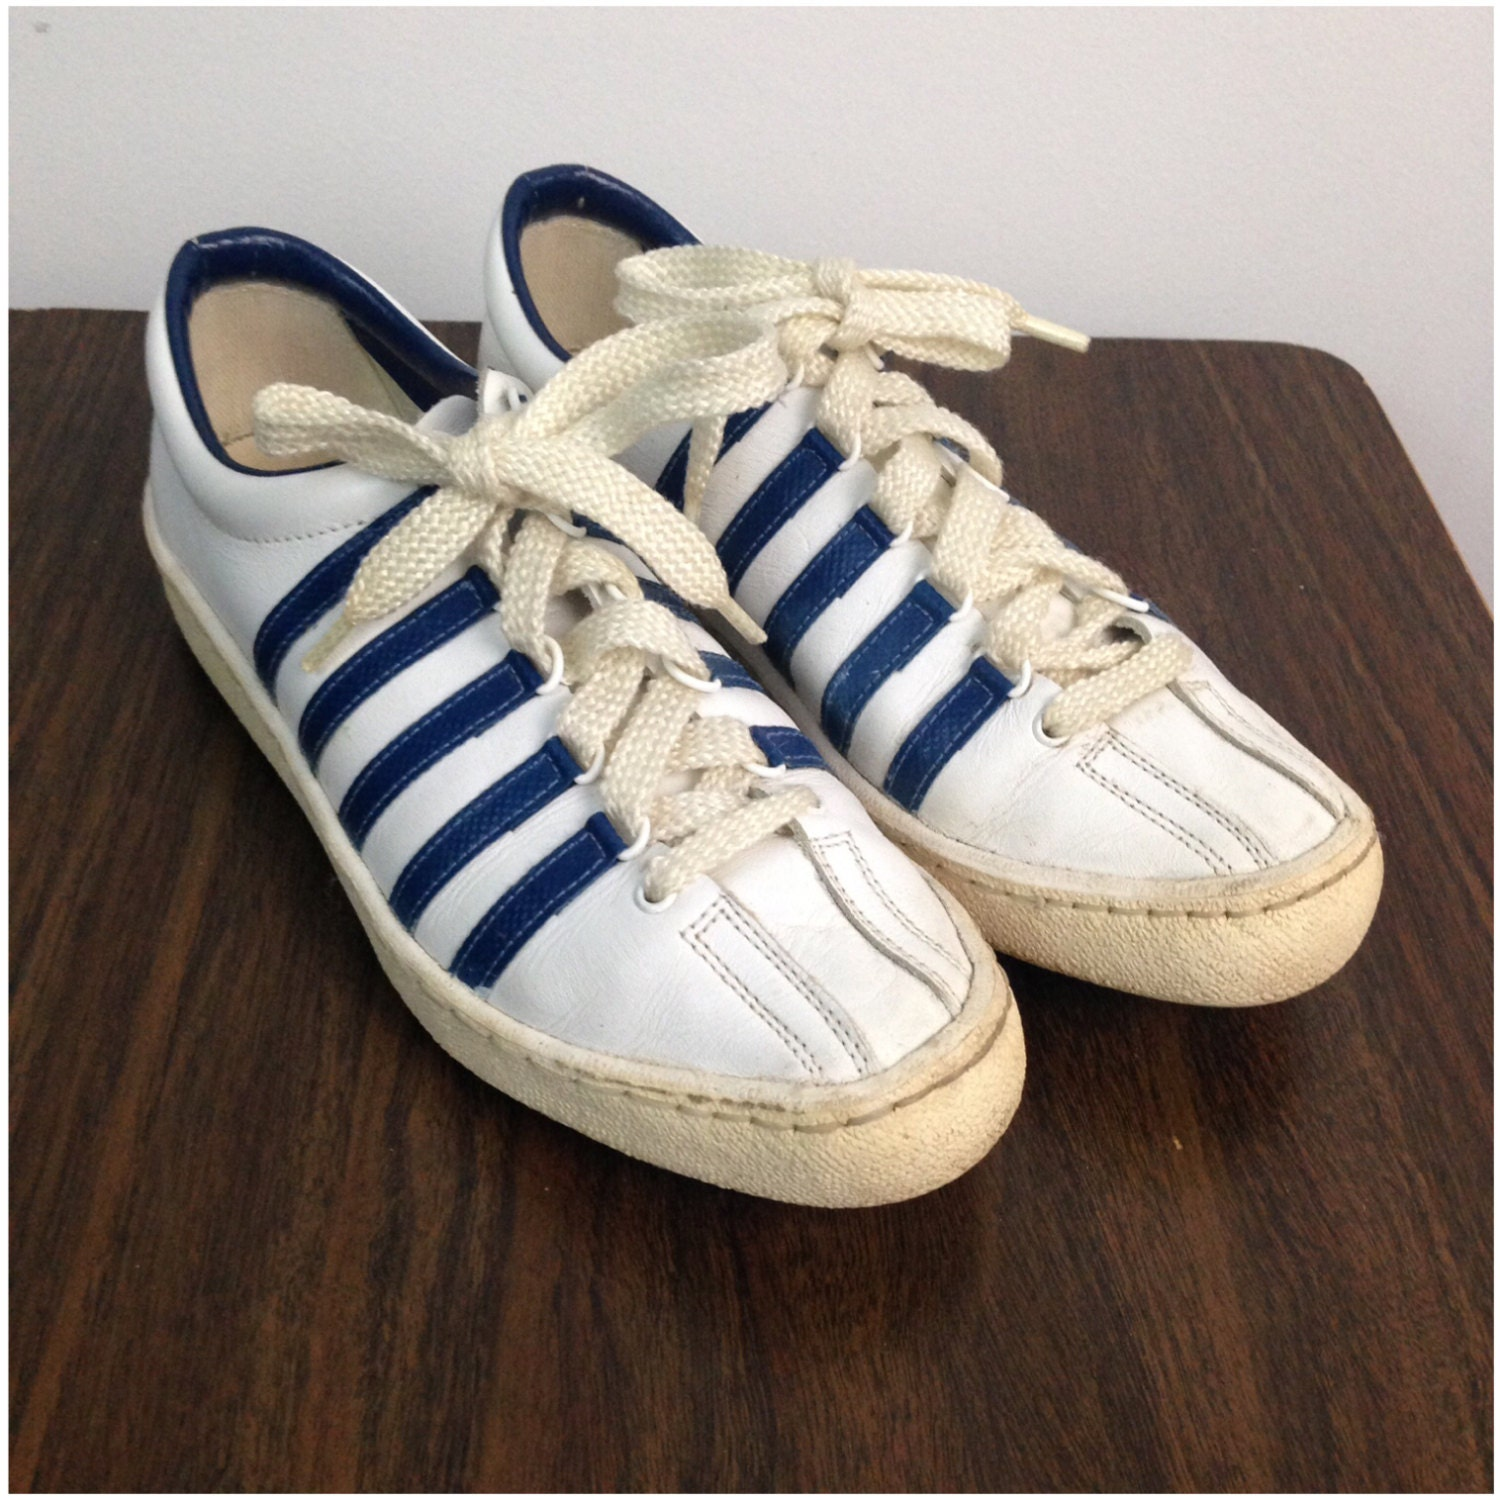 84a35ab63ee2 sneakers of the 80s